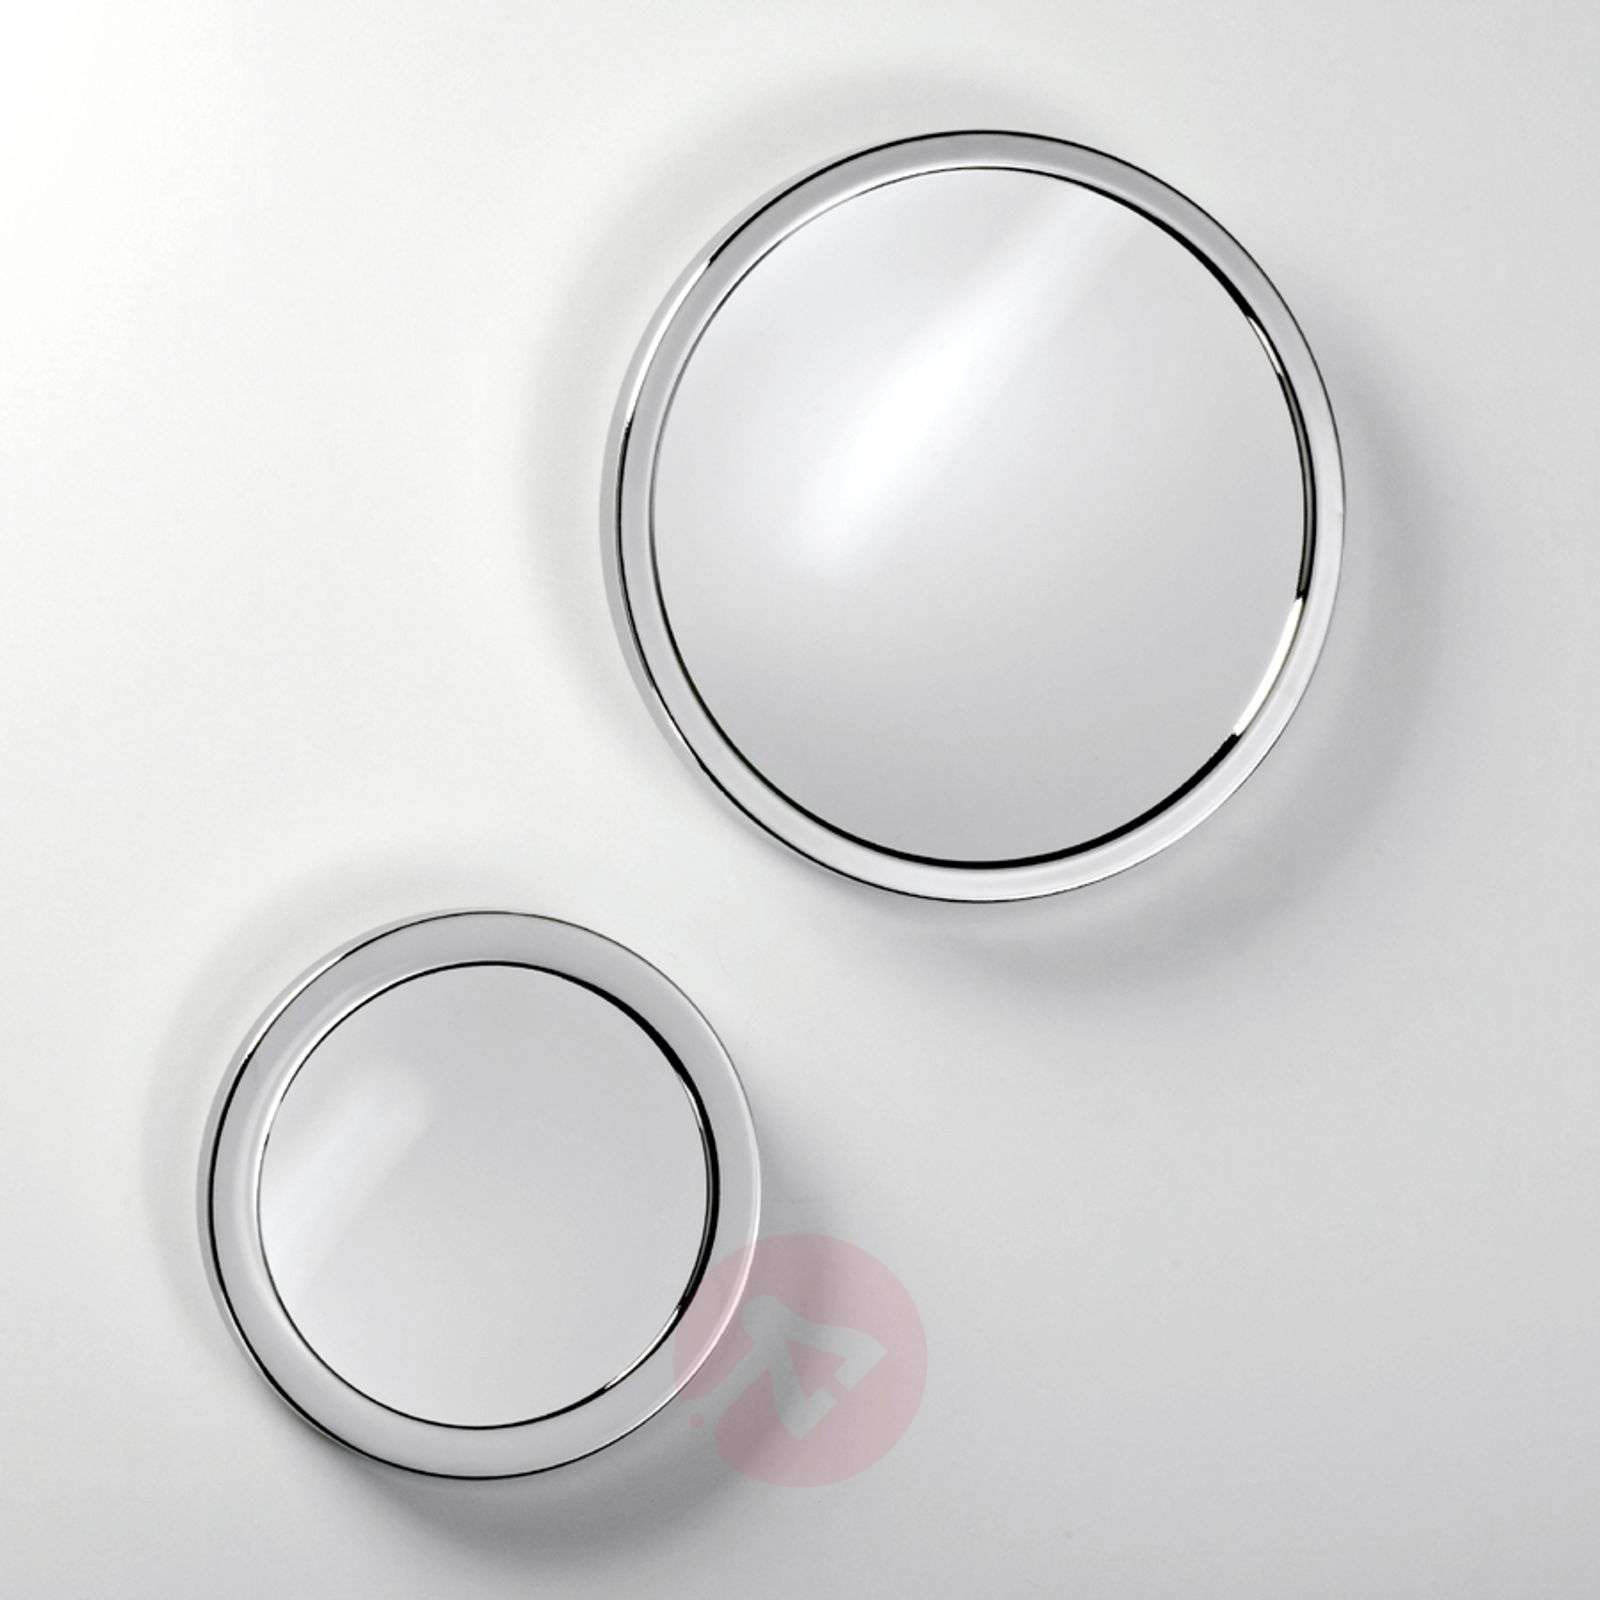 GLOBE cosmetic mirror with suction cups-2504212X-01